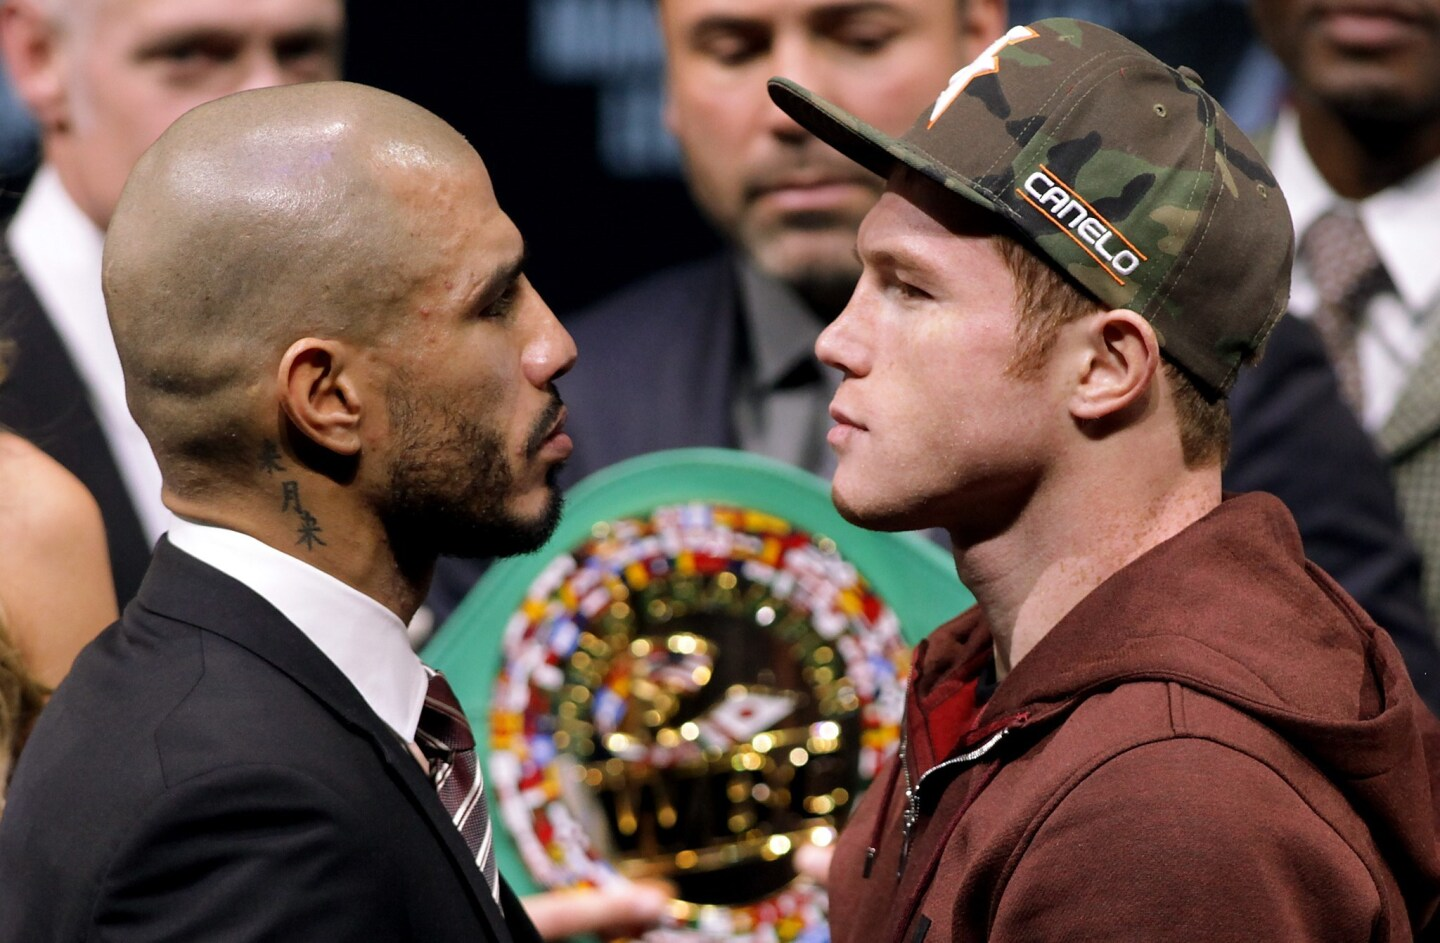 Former WBC Middleweight World Champion Miguel Cotto (L), from Puerto Rico and two time world champion, Saul 'Canelo' Alvarez from Guadalajara, Mexico face-off during a press conference in Las Vegas, Nevada on November 18, 2015. Cotto was stripped of his World Boxing Council middleweight world title on Tuesday, days before his anticipated bout against Mexican Saul Alvarez in Las Vegas on Saturday. Amid reports that Cotto declined to pay the USD 300,000 sanctioning fee for a title fight, the WBC said in a statement only that the Puerto Rican and his camp failed to comply with WBC regulations. AFP PHOTO/ John GurzinskiJOHN GURZINSKI/AFP/Getty Images ** OUTS - ELSENT, FPG, CM - OUTS * NM, PH, VA if sourced by CT, LA or MoD **